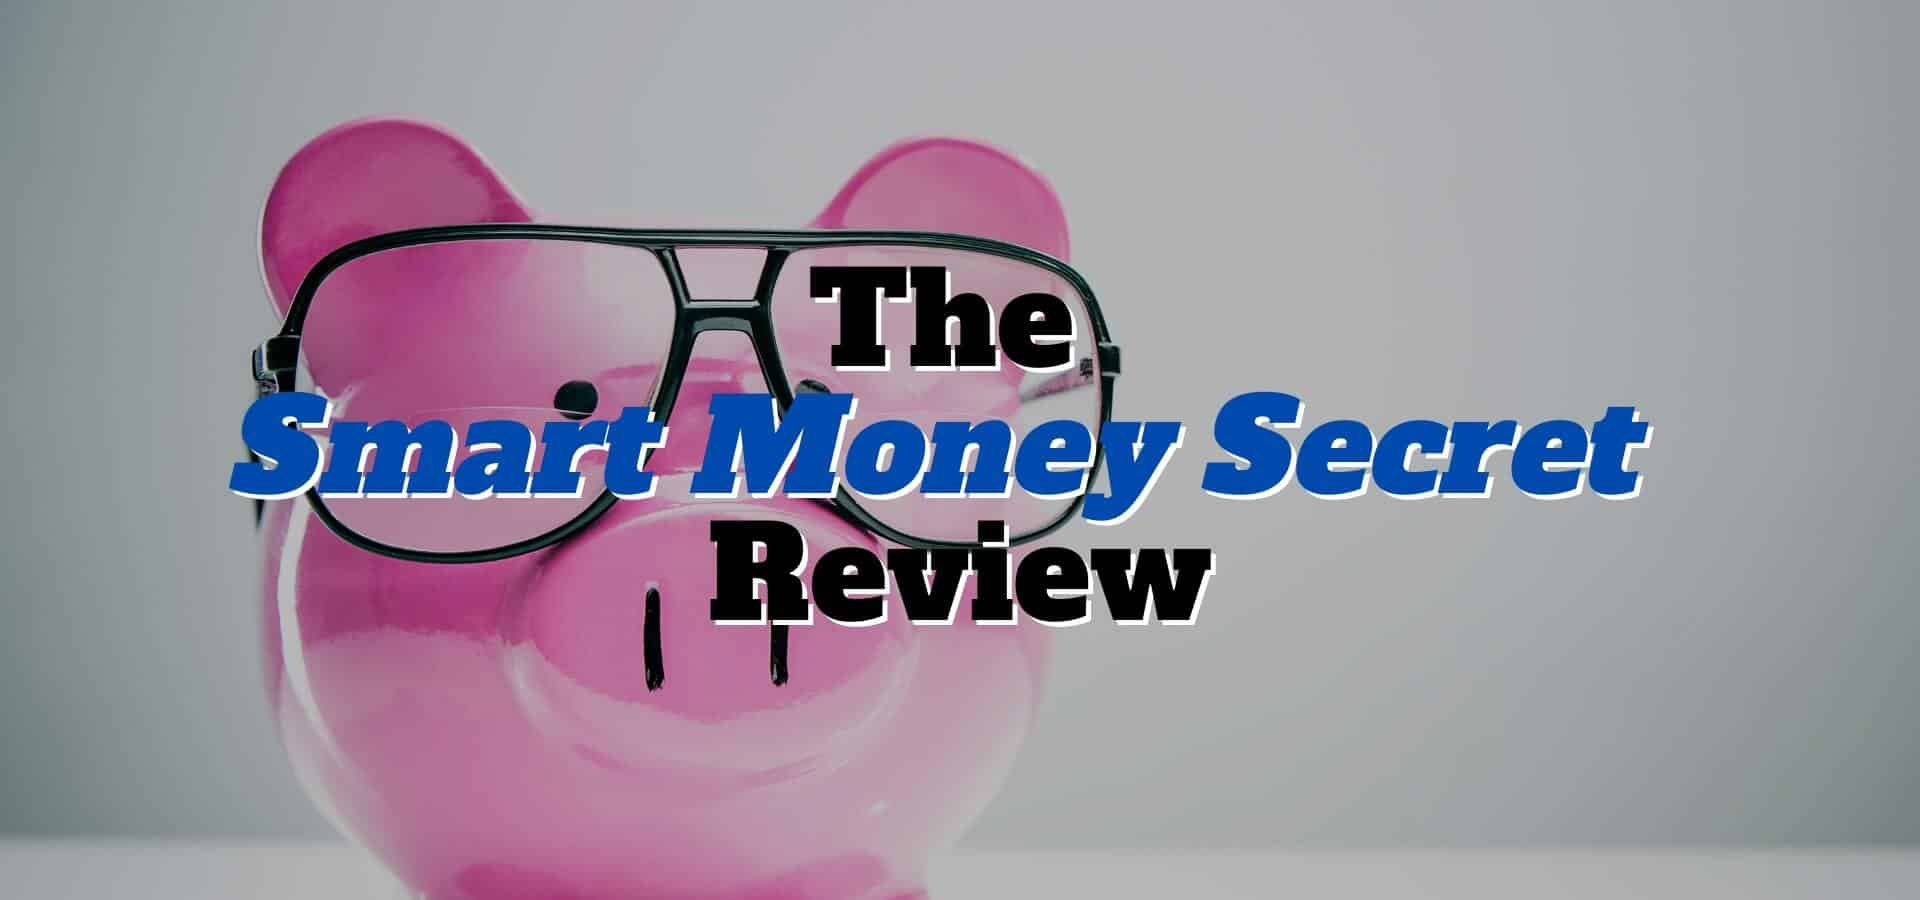 Smart Money Secret Review: Is This Just Another Scam?